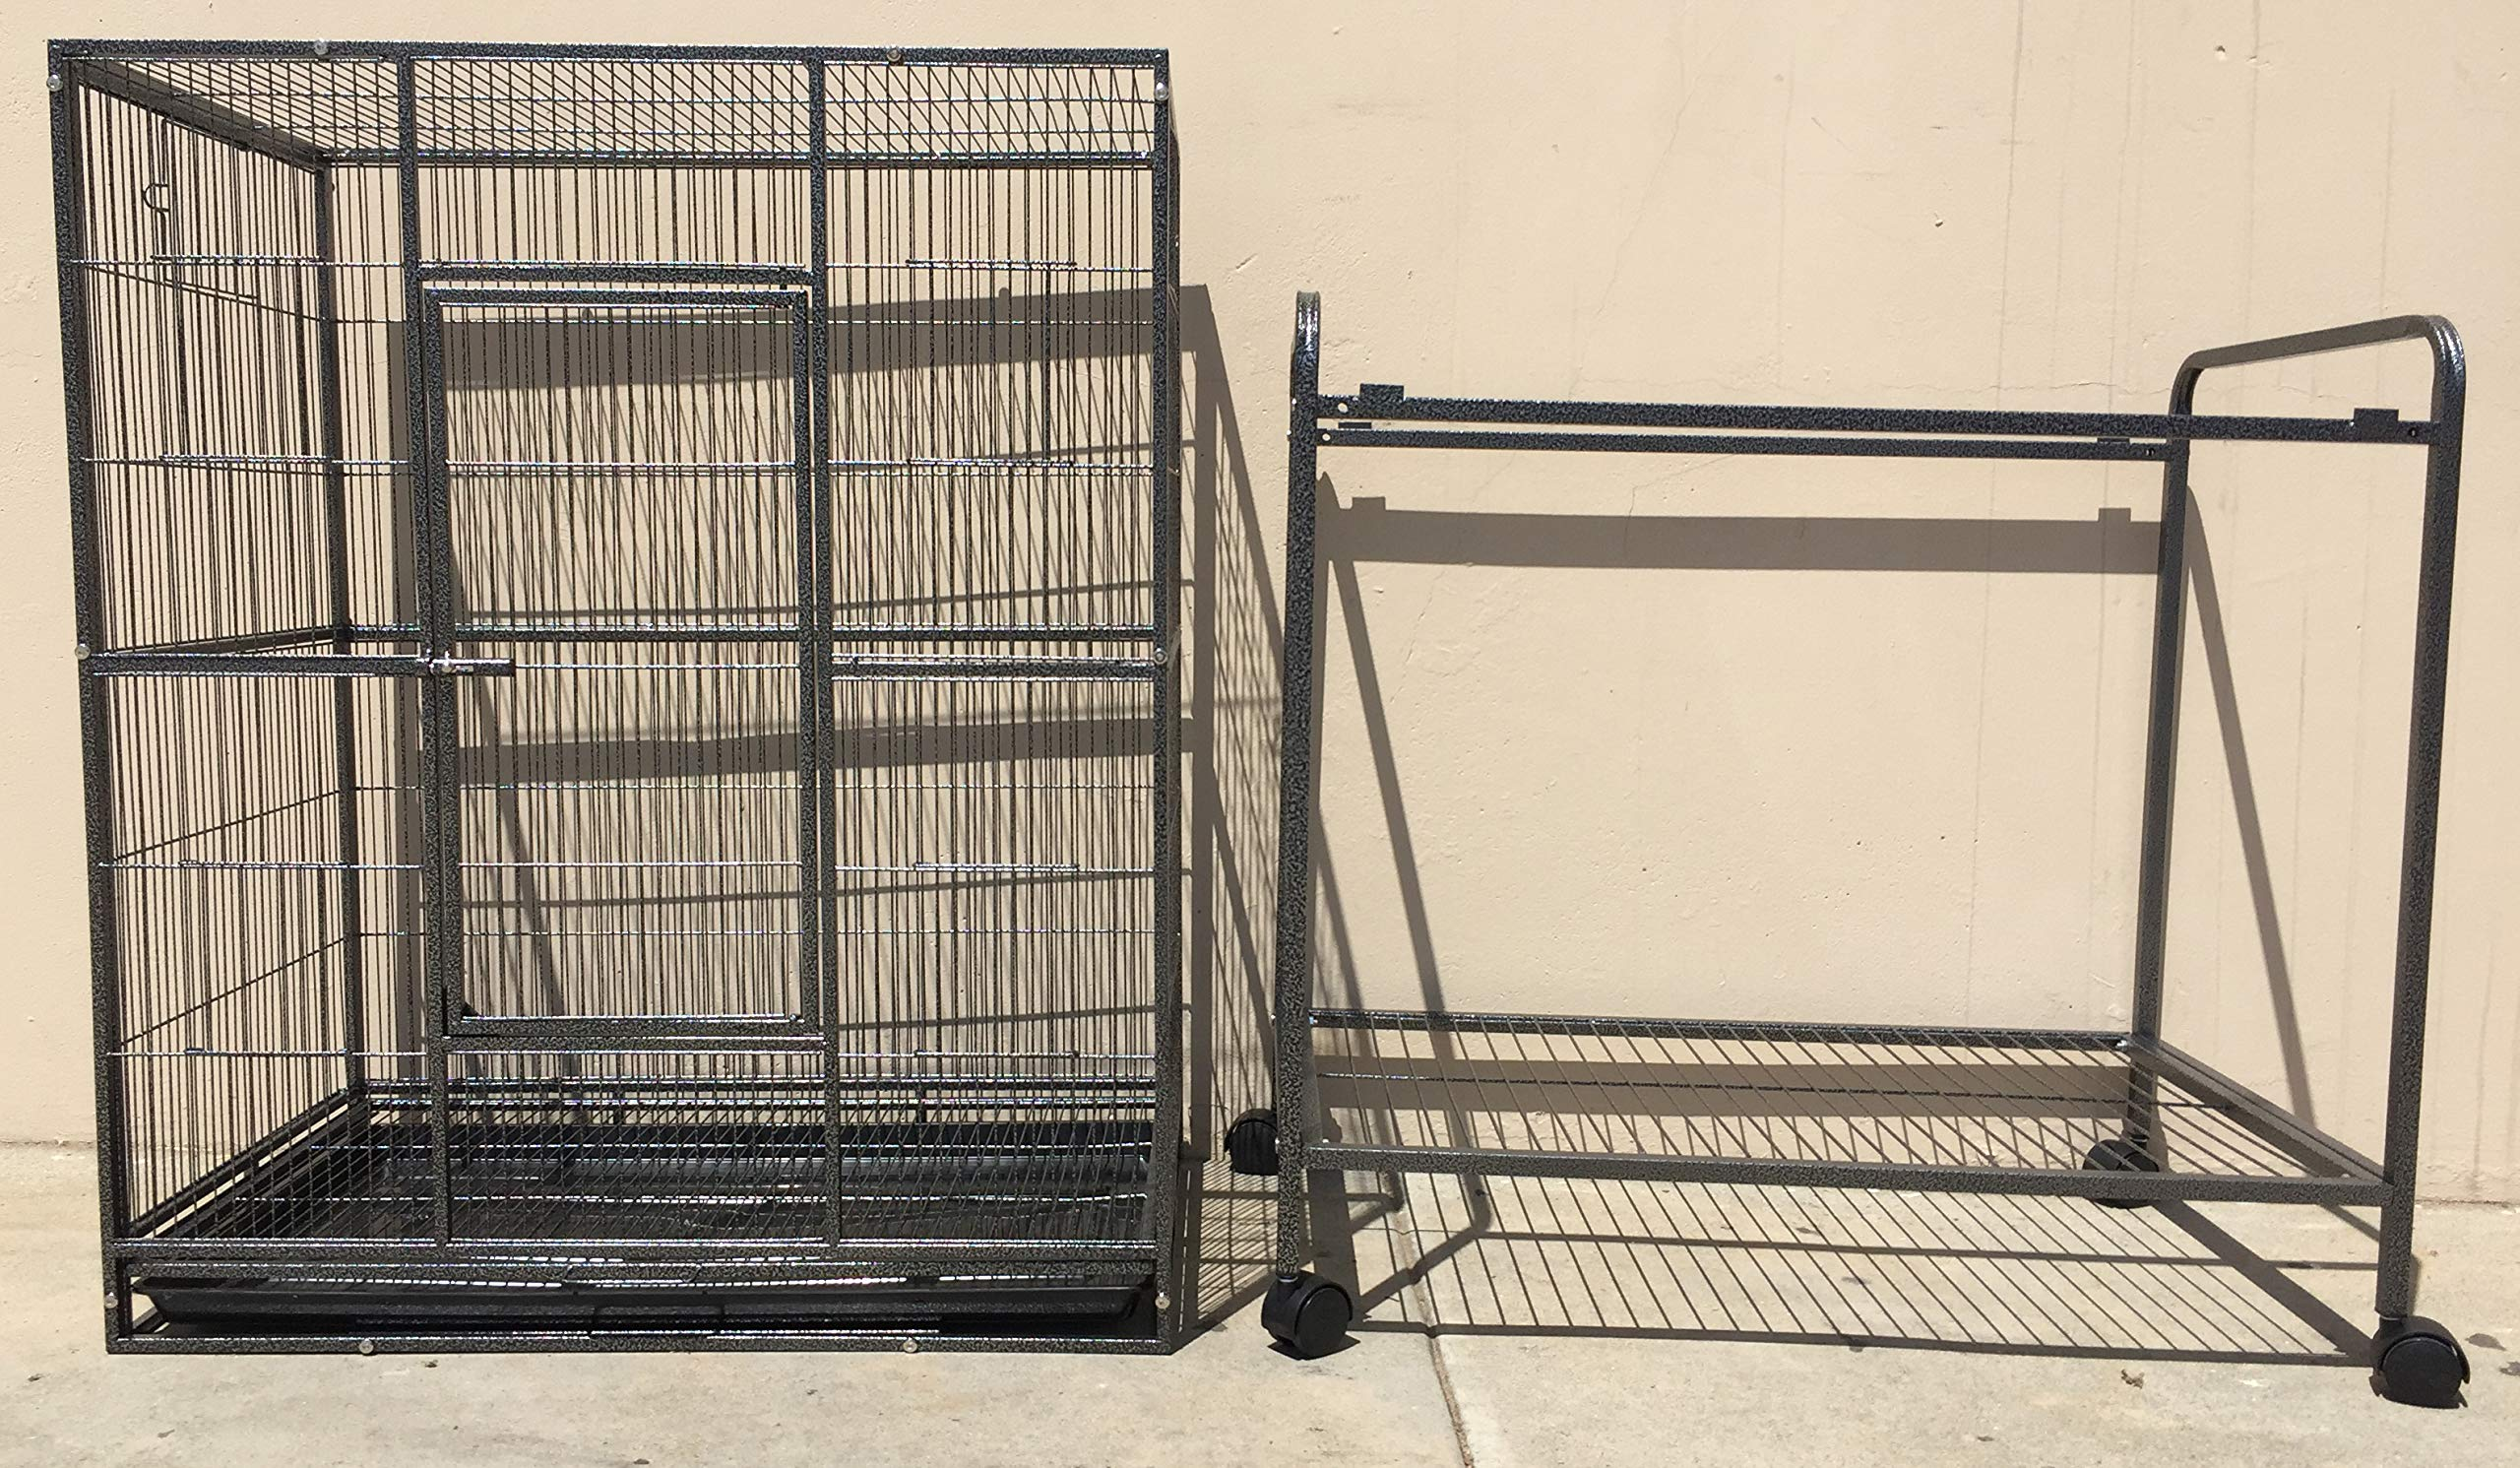 Mcage New Large Wrought Iron 4 Levels Ferret Chinchilla Sugar Glider Cage 30-Inch by 18-Inch by 63-Inch with Stand on Wheels